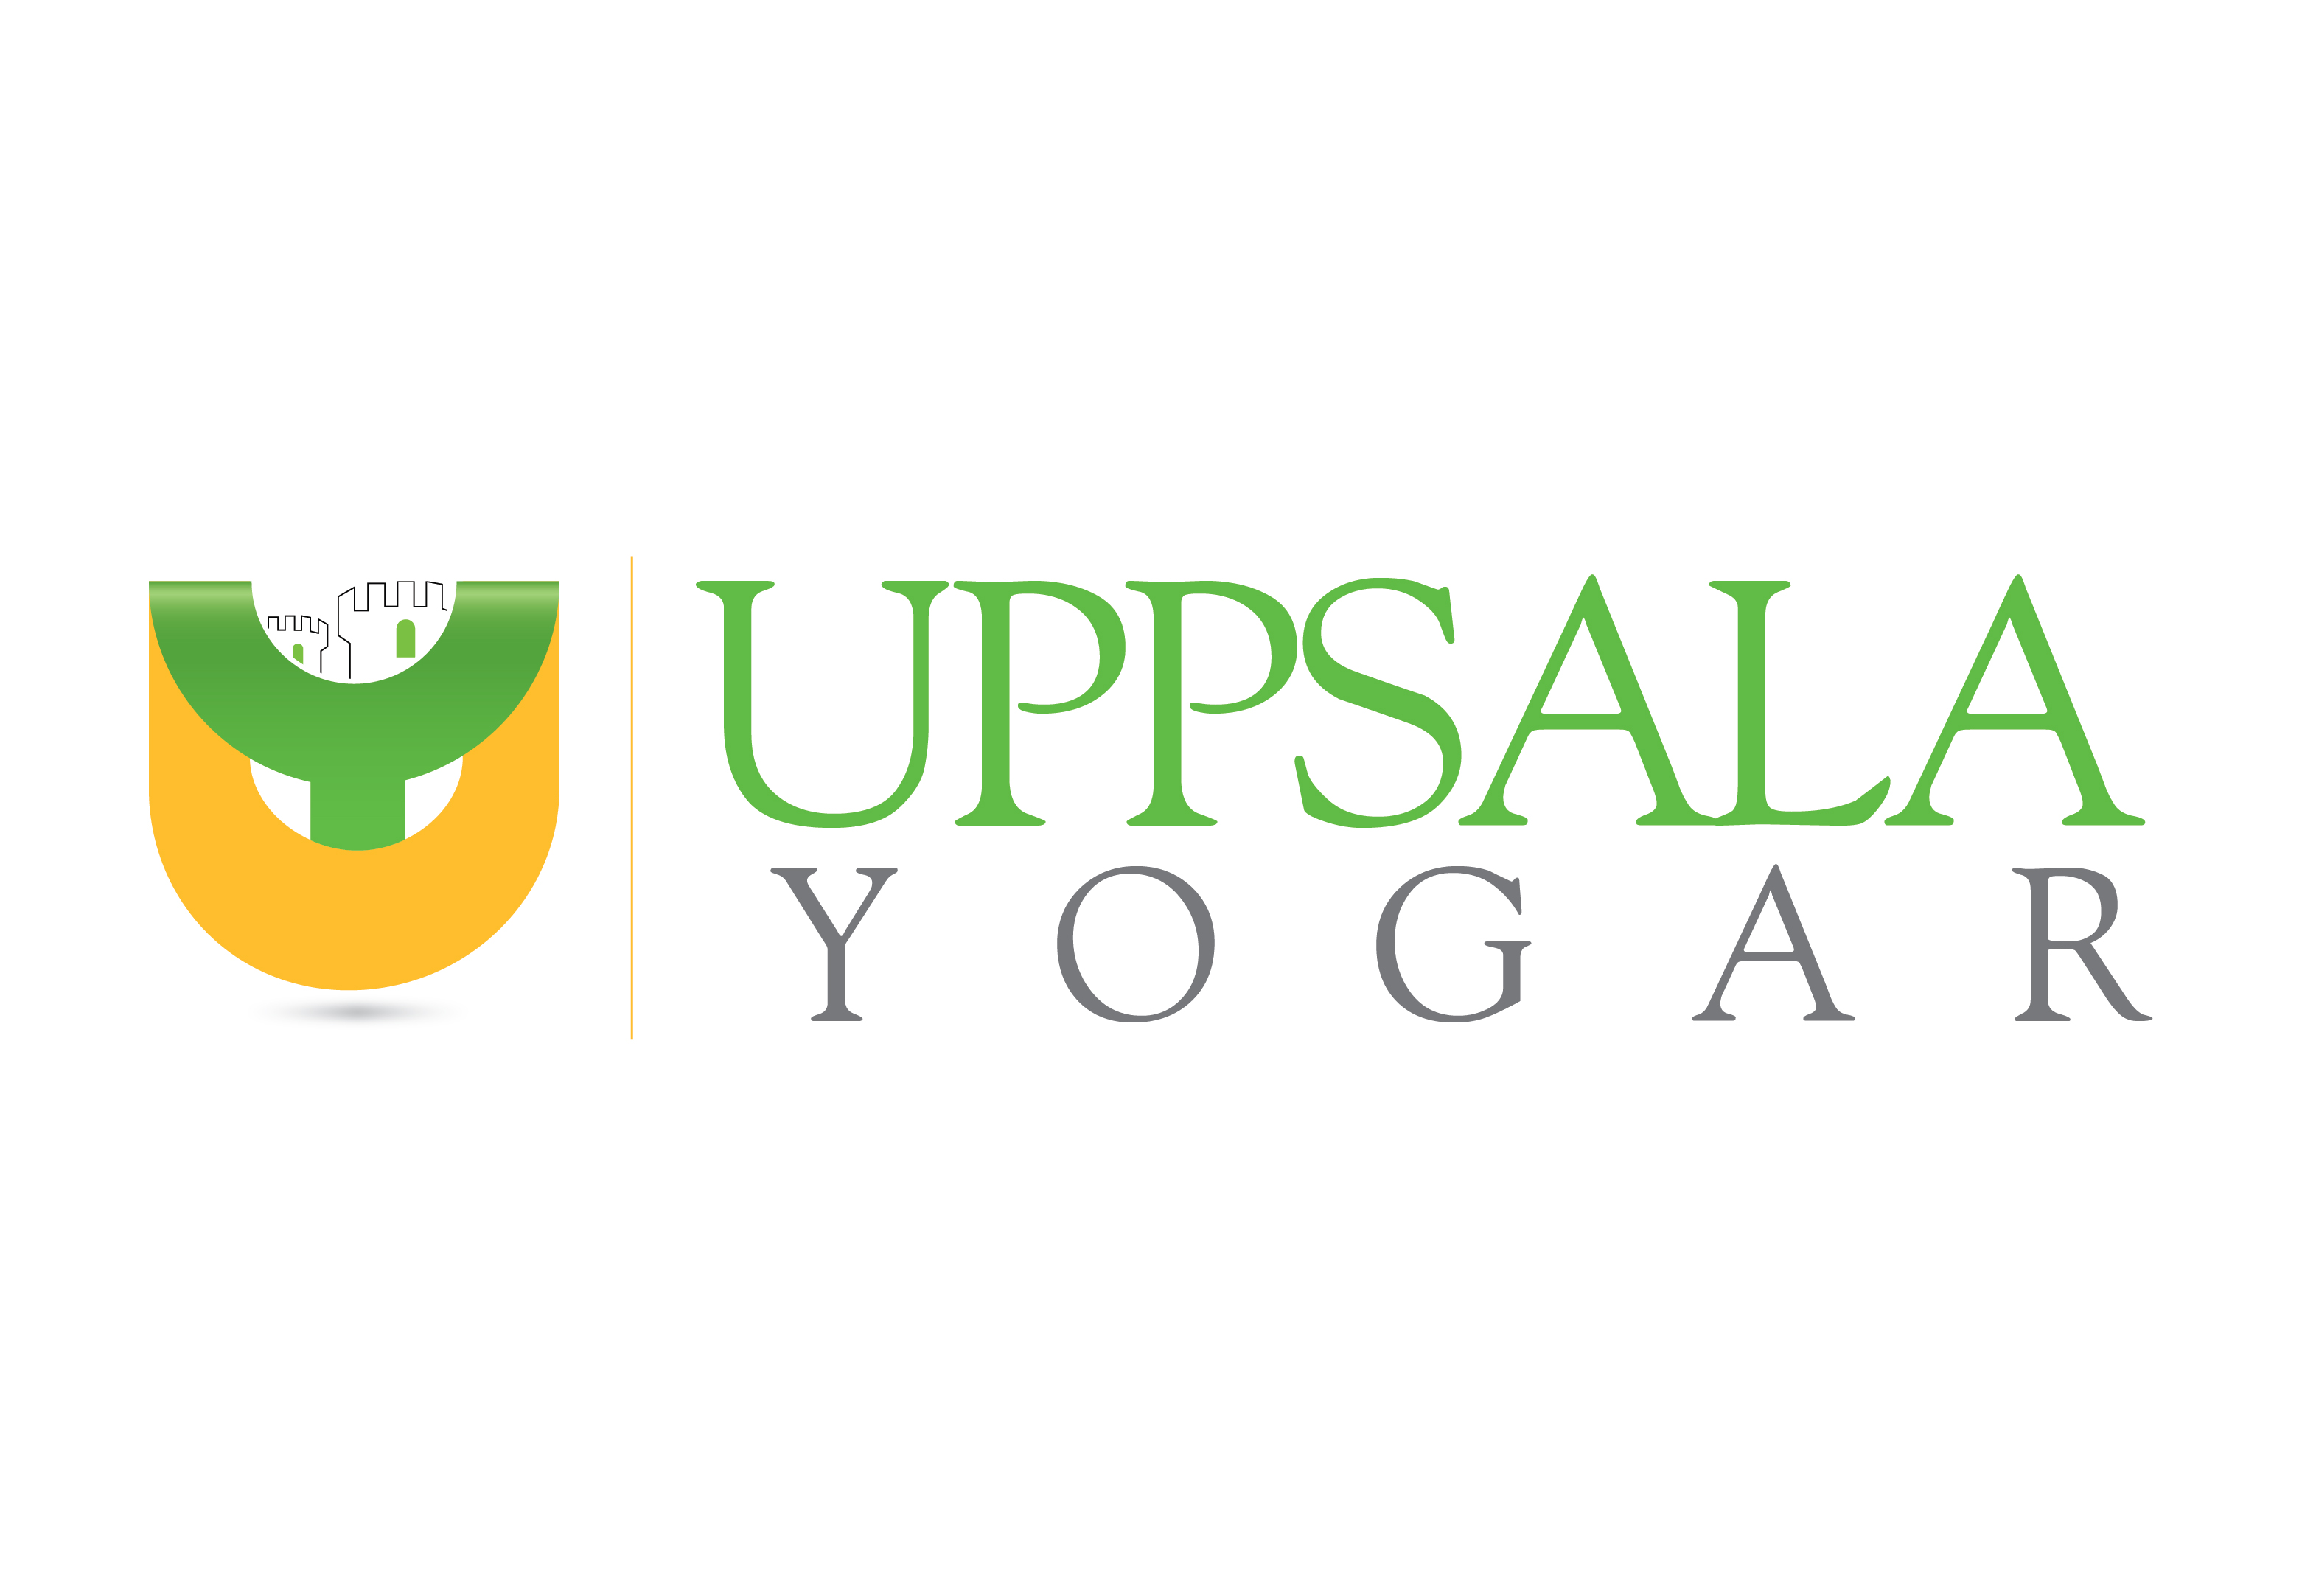 Logo Design by Waseem Haider - Entry No. 26 in the Logo Design Contest Unique Logo Design Wanted for Uppsala Yogar.